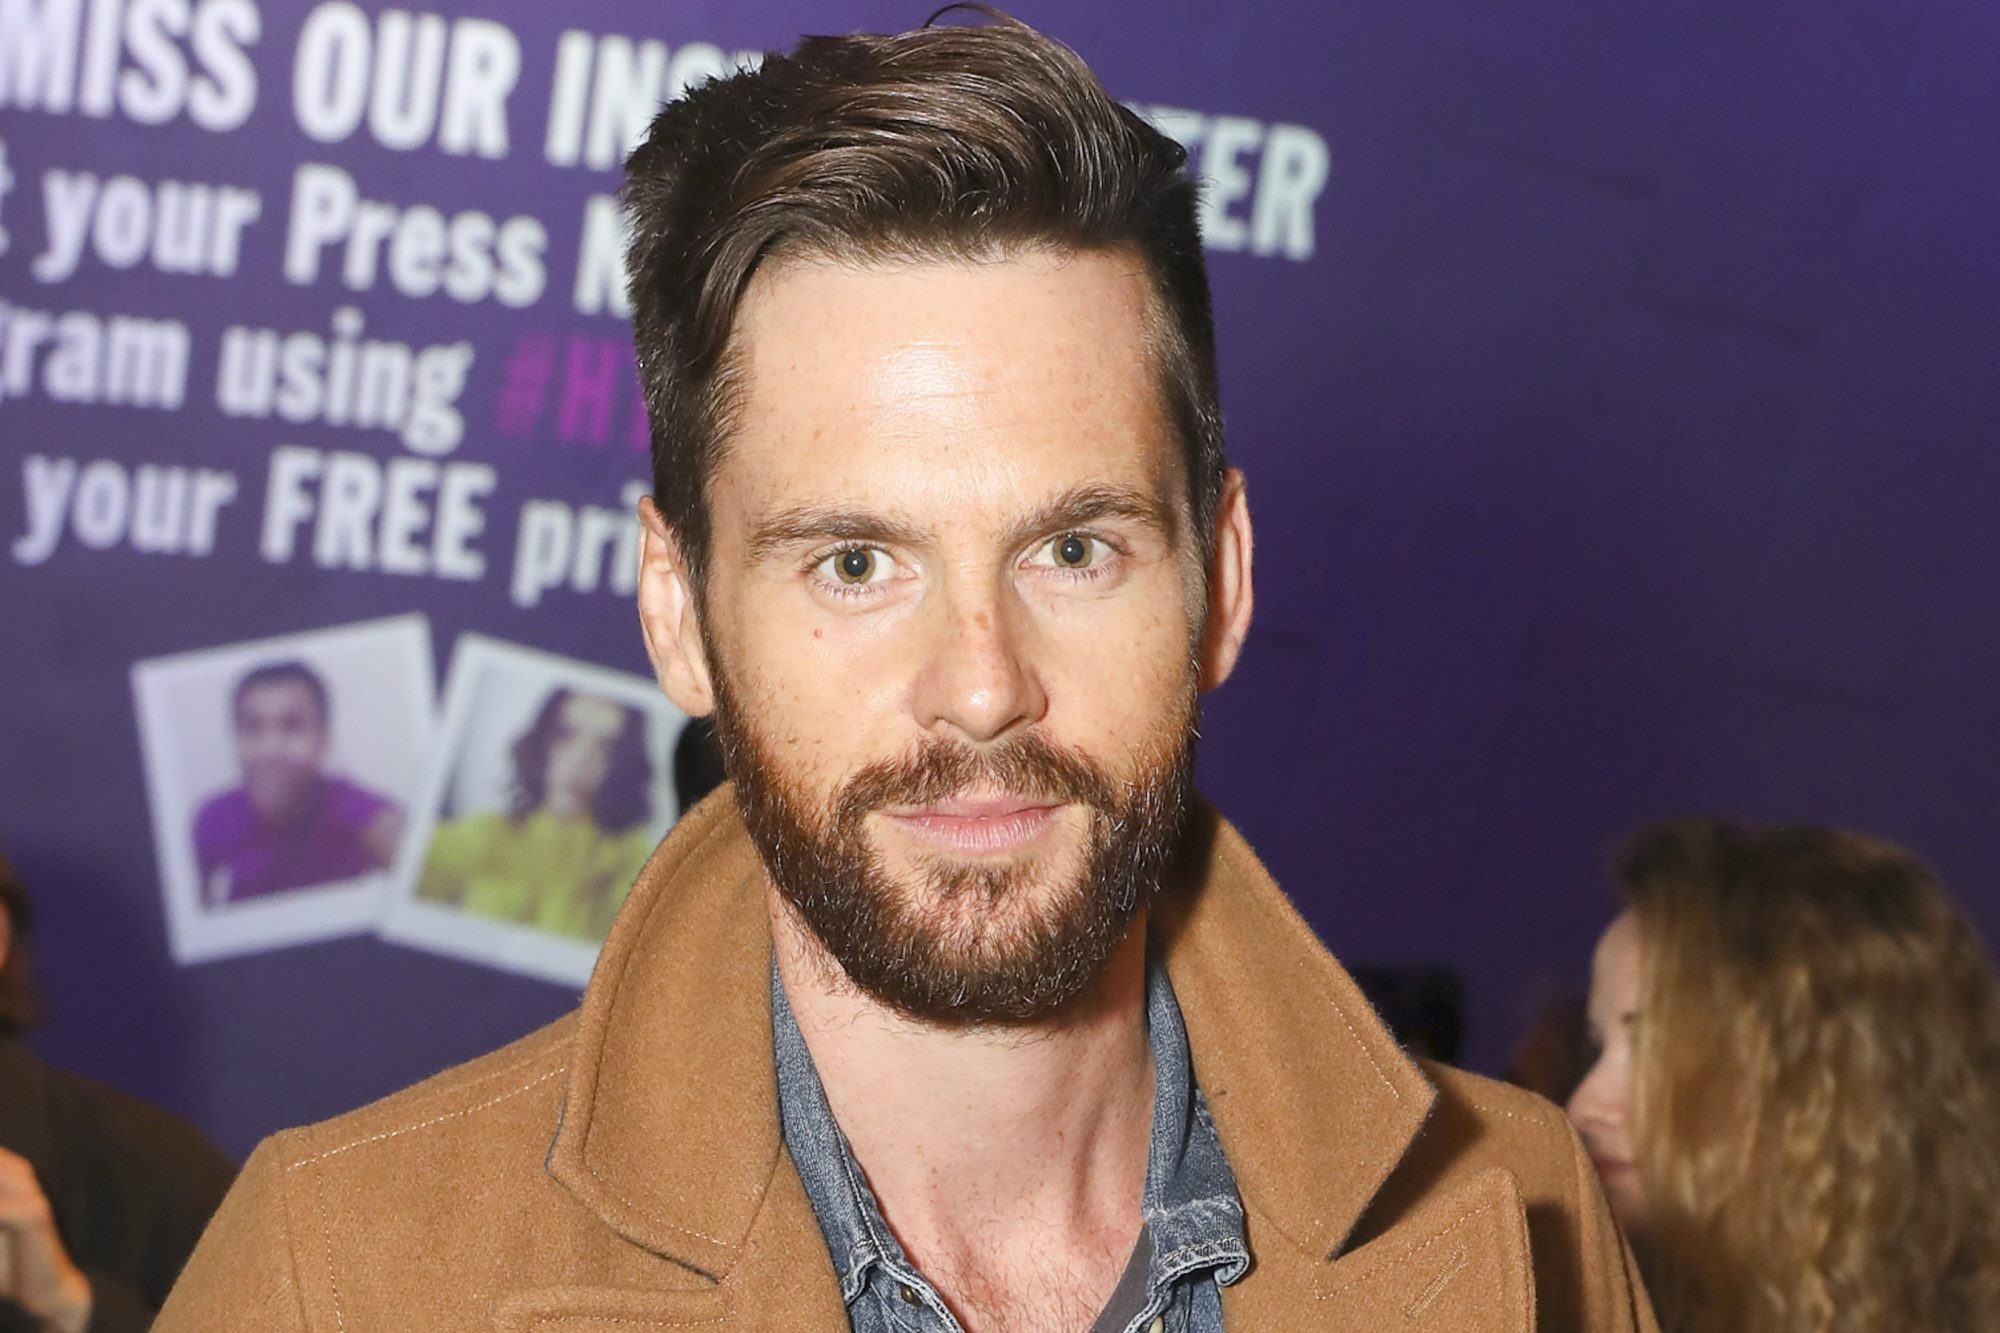 LONDON, ENGLAND - OCTOBER 25: Tom Riley attends the press night of 'I and You' at Hampstead Theatre at Hampstead Heath on October 25, 2018 in London, England. (Photo by David M. Benett/Dave Benett/Getty Images for Coach)